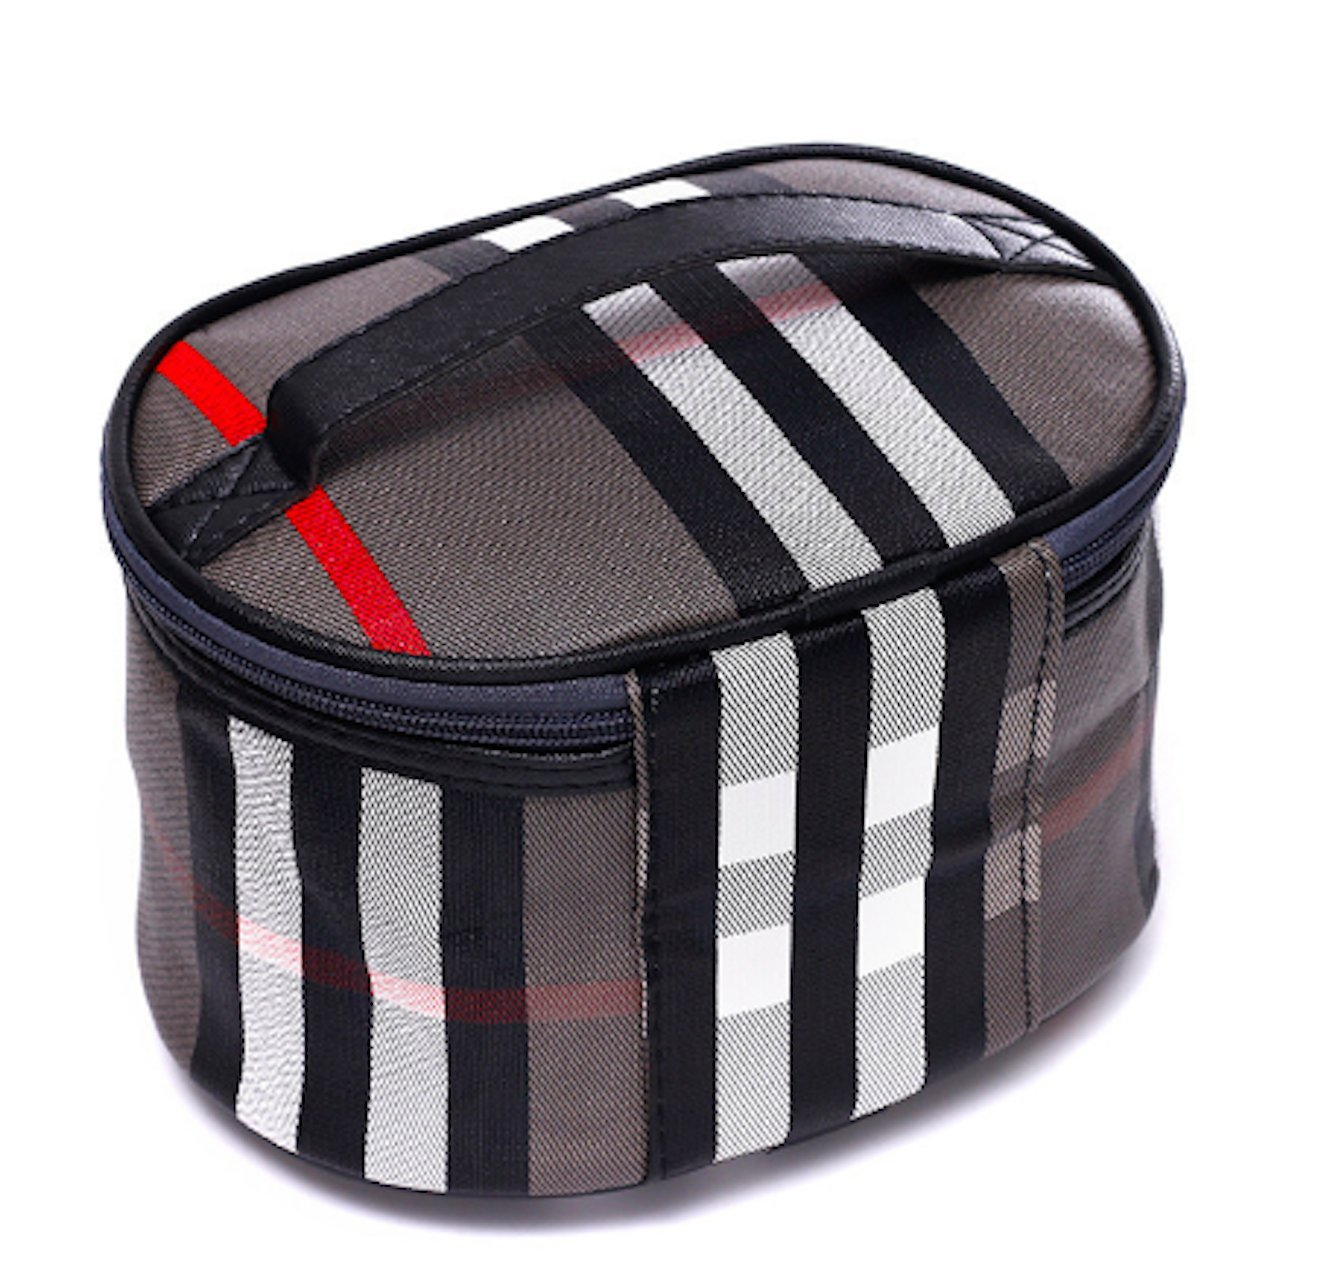 ts-store Cosmetic Bag Travel Makeup Organizer Cosmetic Case Train Case for Women Case Multifunction Pouch for Women (grey) toiletry brush magic tote box carrier tool holder makeupbox handbag compact